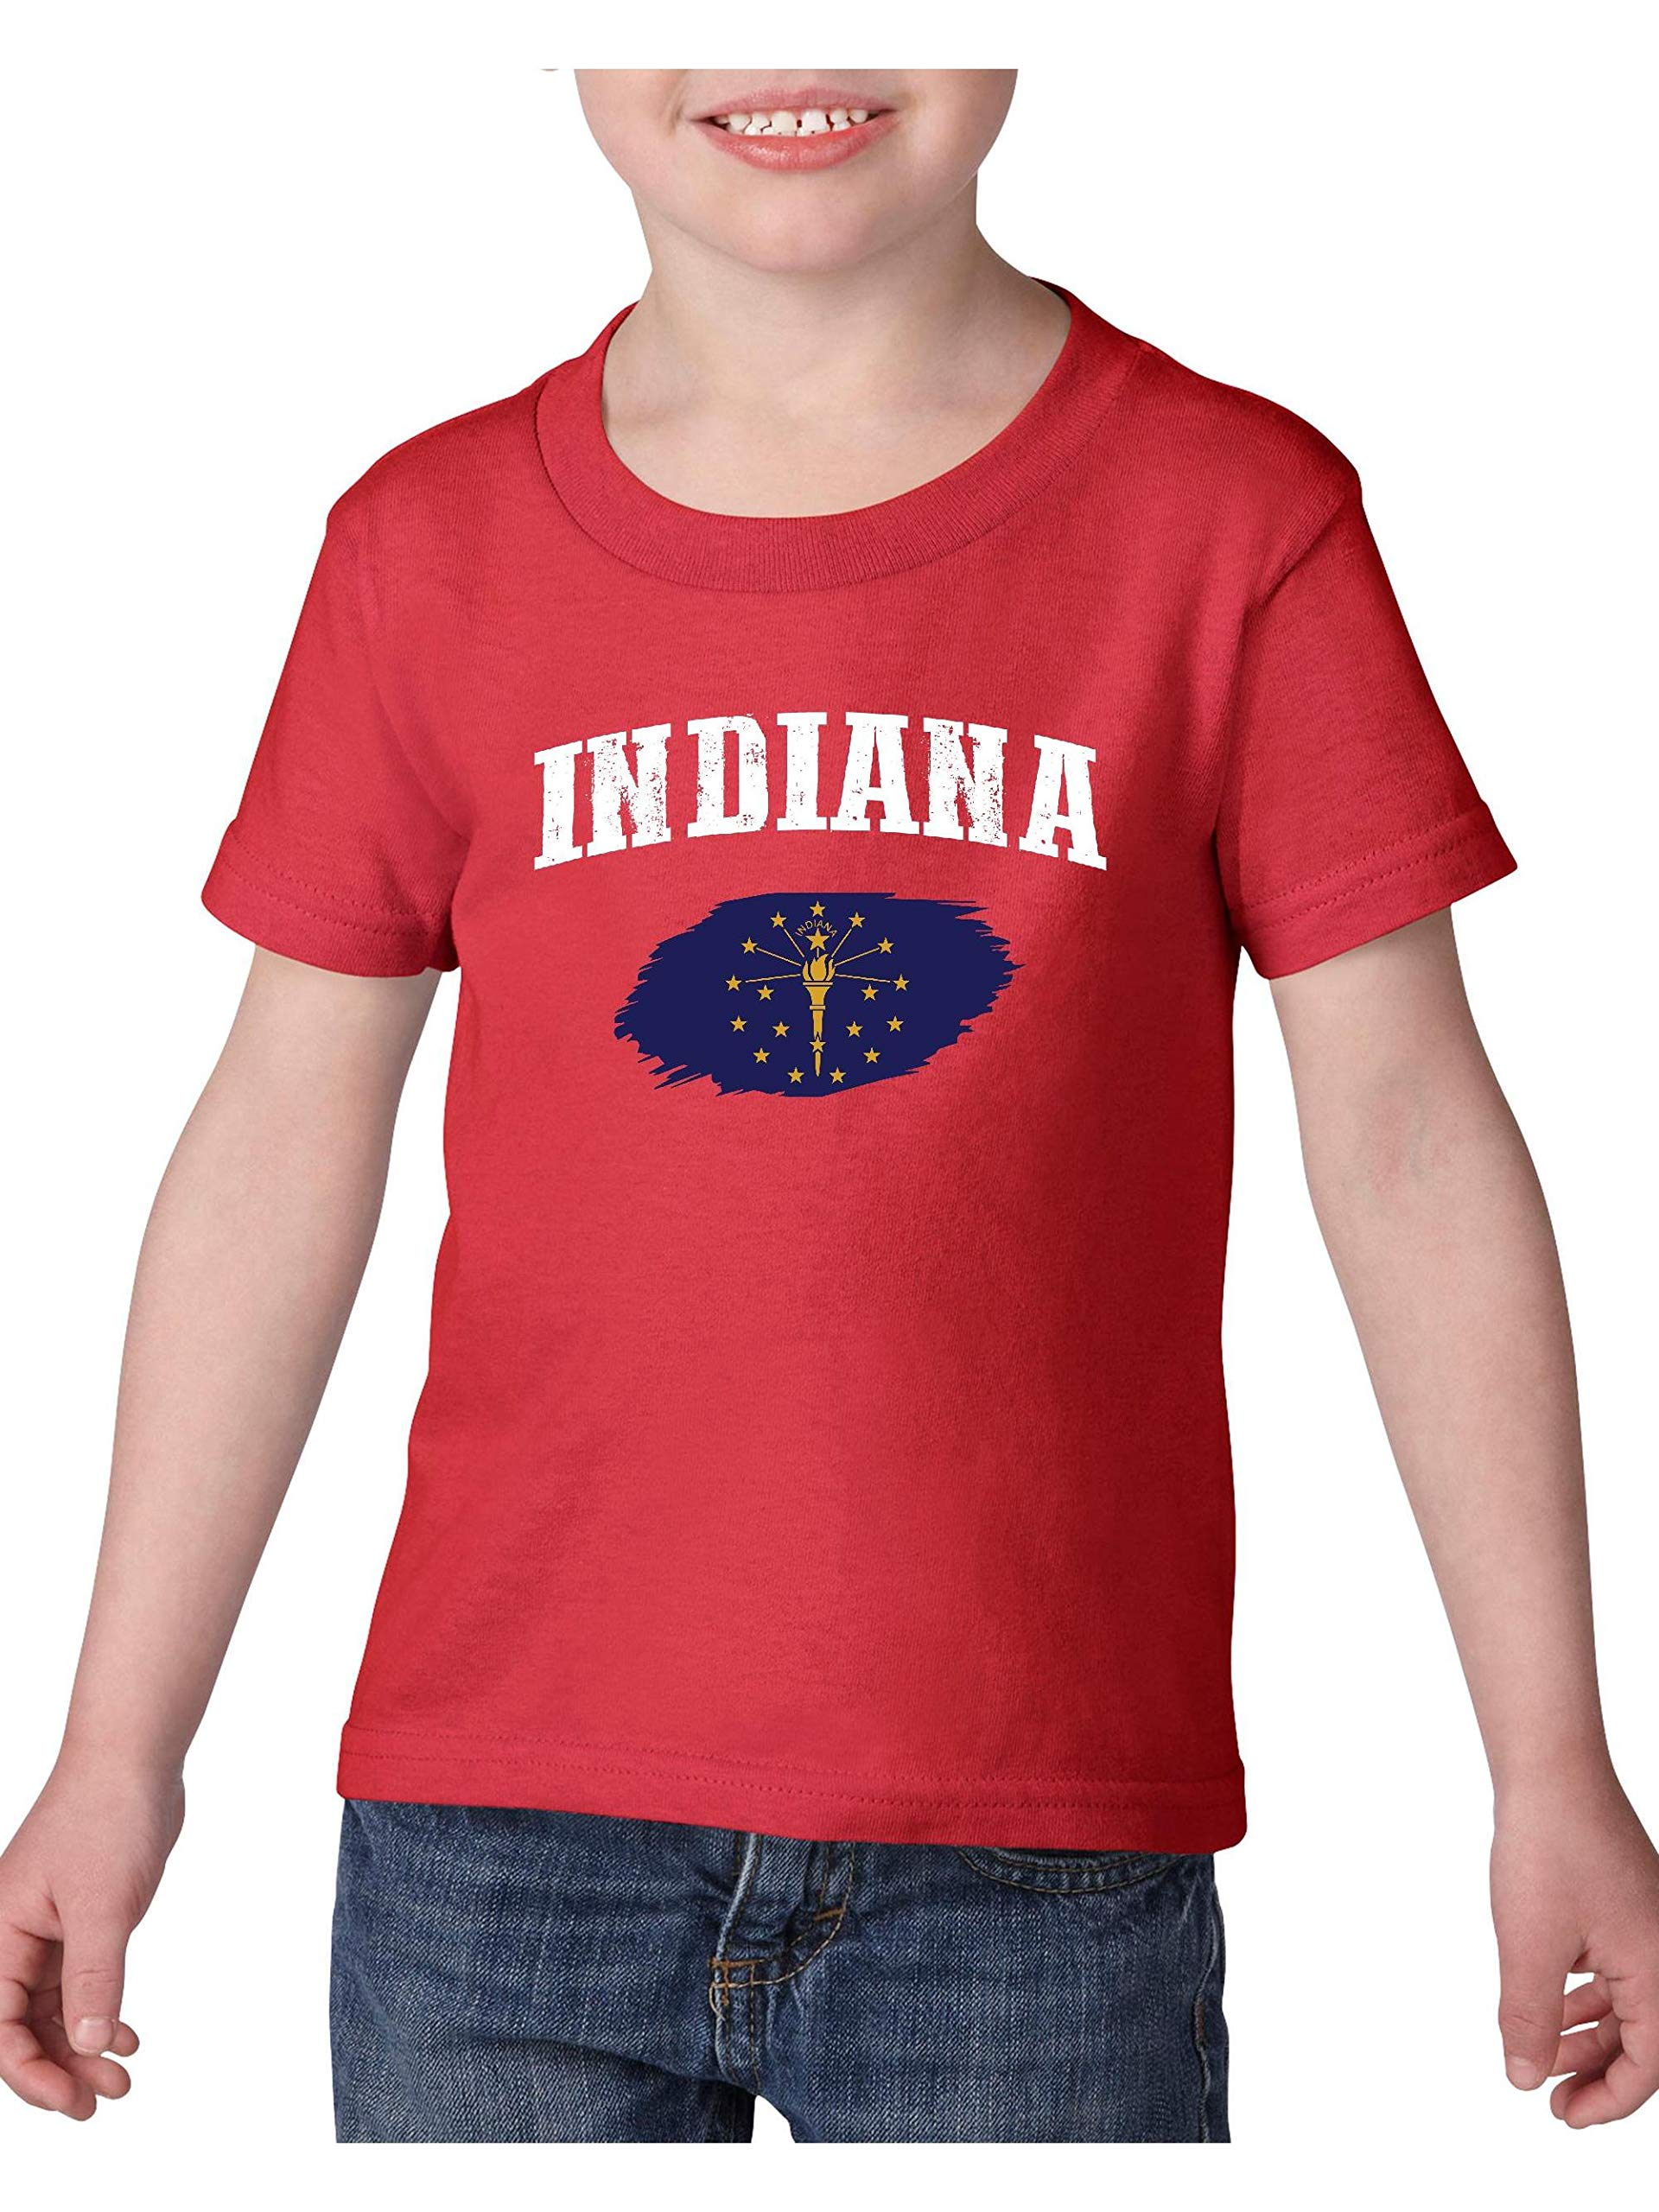 Mom S Favorite Indiana Proud Home Indianapolis Traveler S Gift Heavy Tee 8941 Shirts